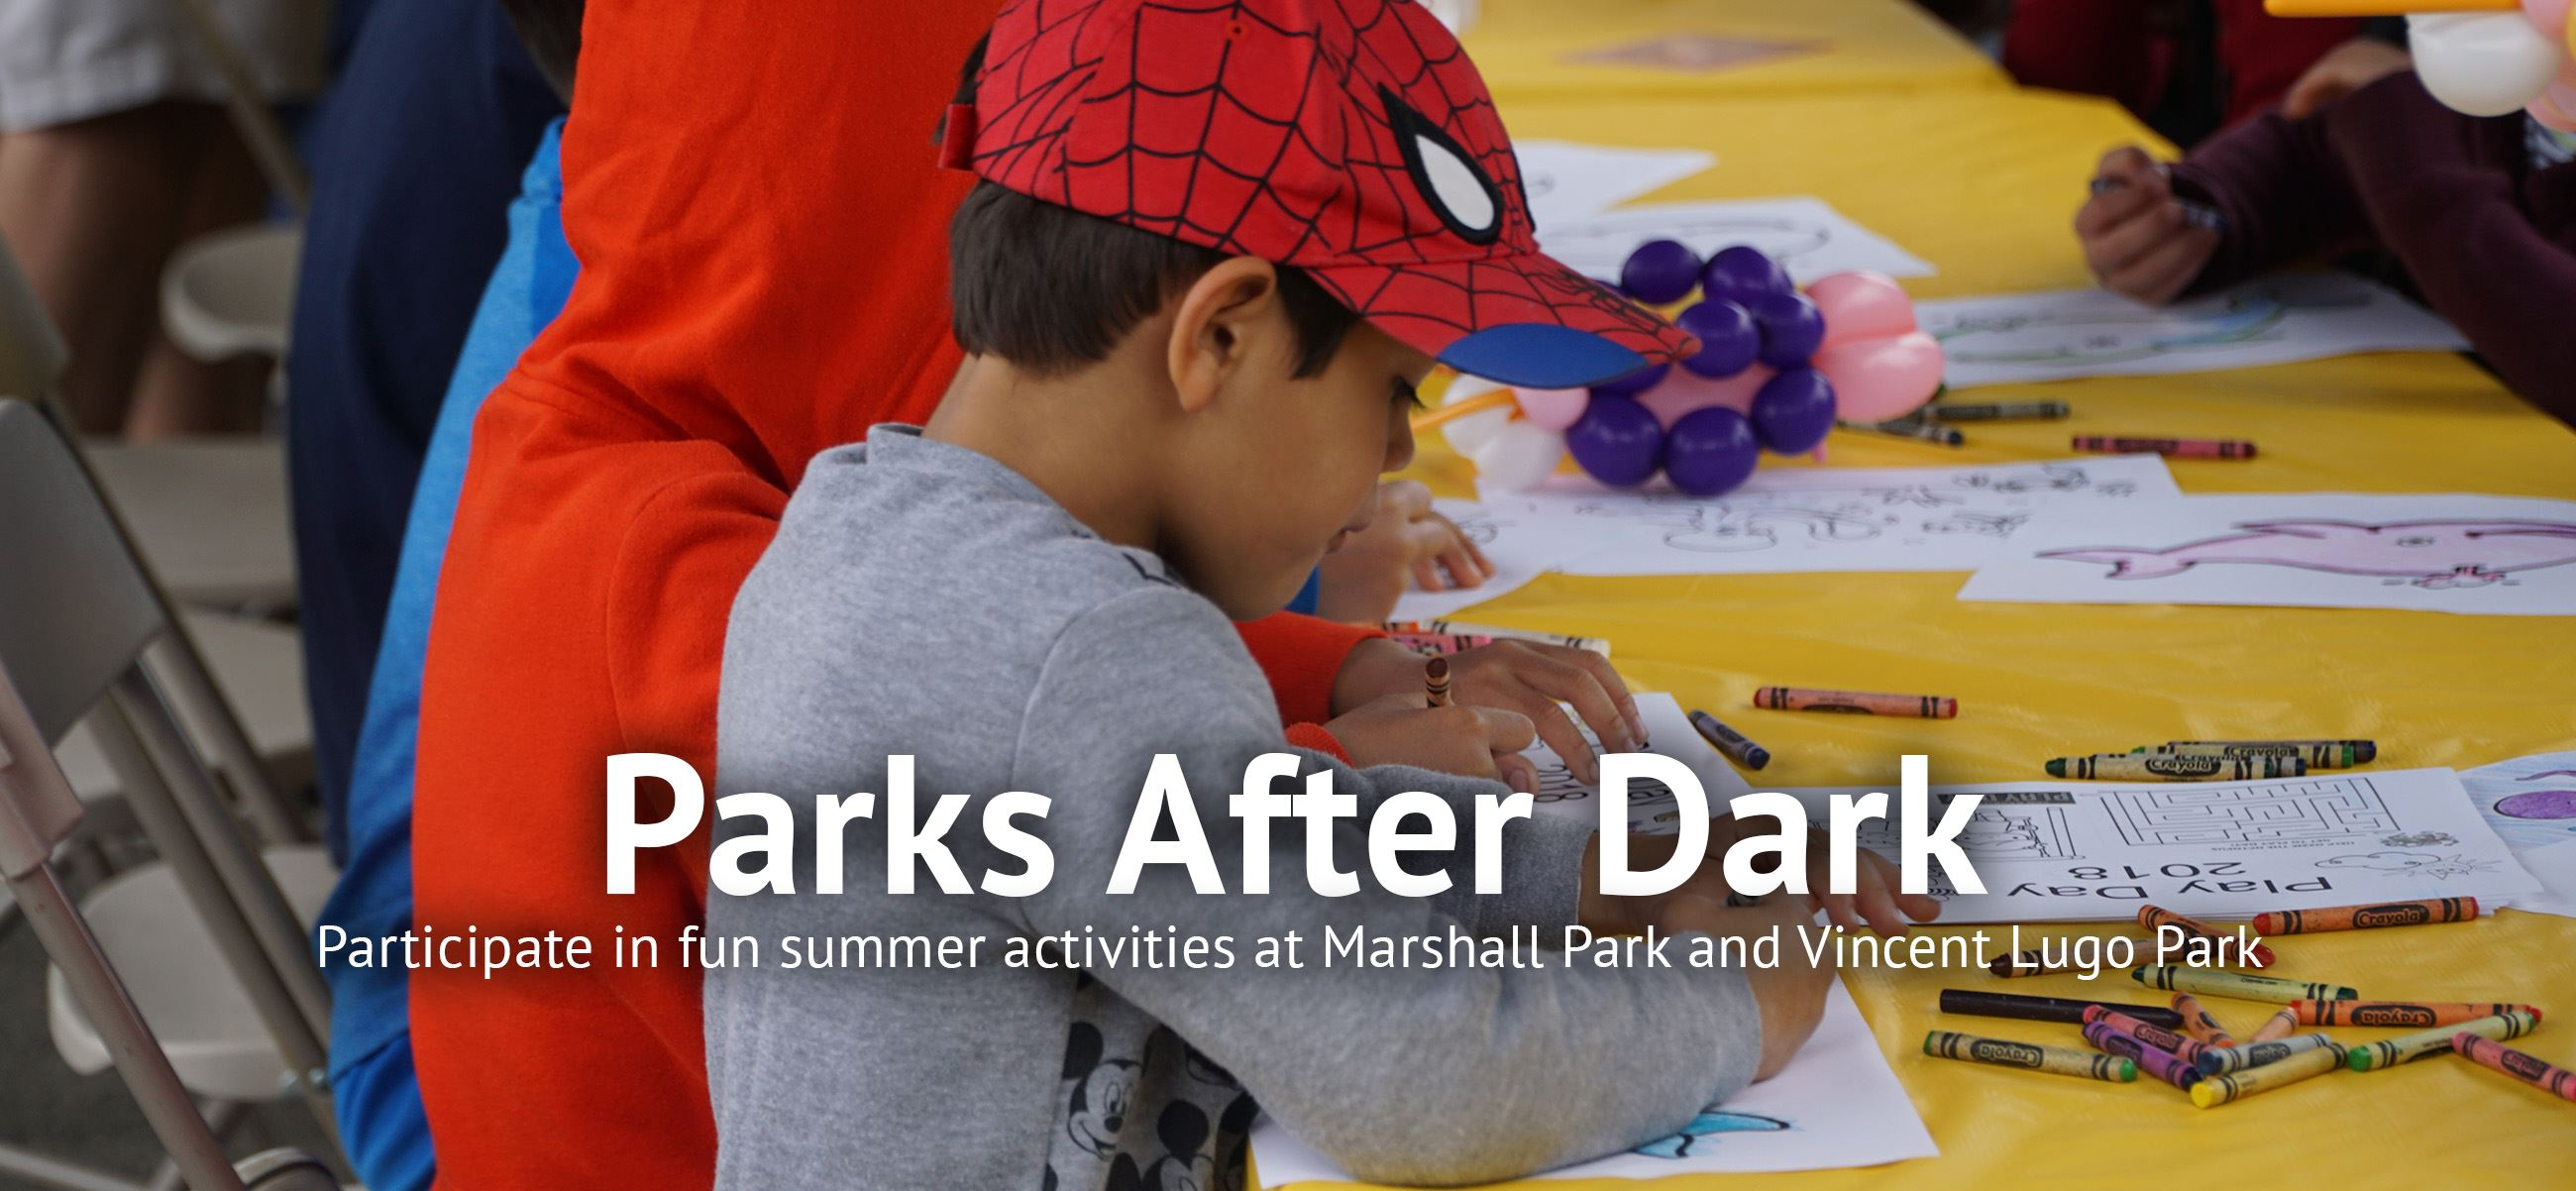 Parks After Dark - Participate in fun summer activities at Marshall Park and Vincent Lugo Park